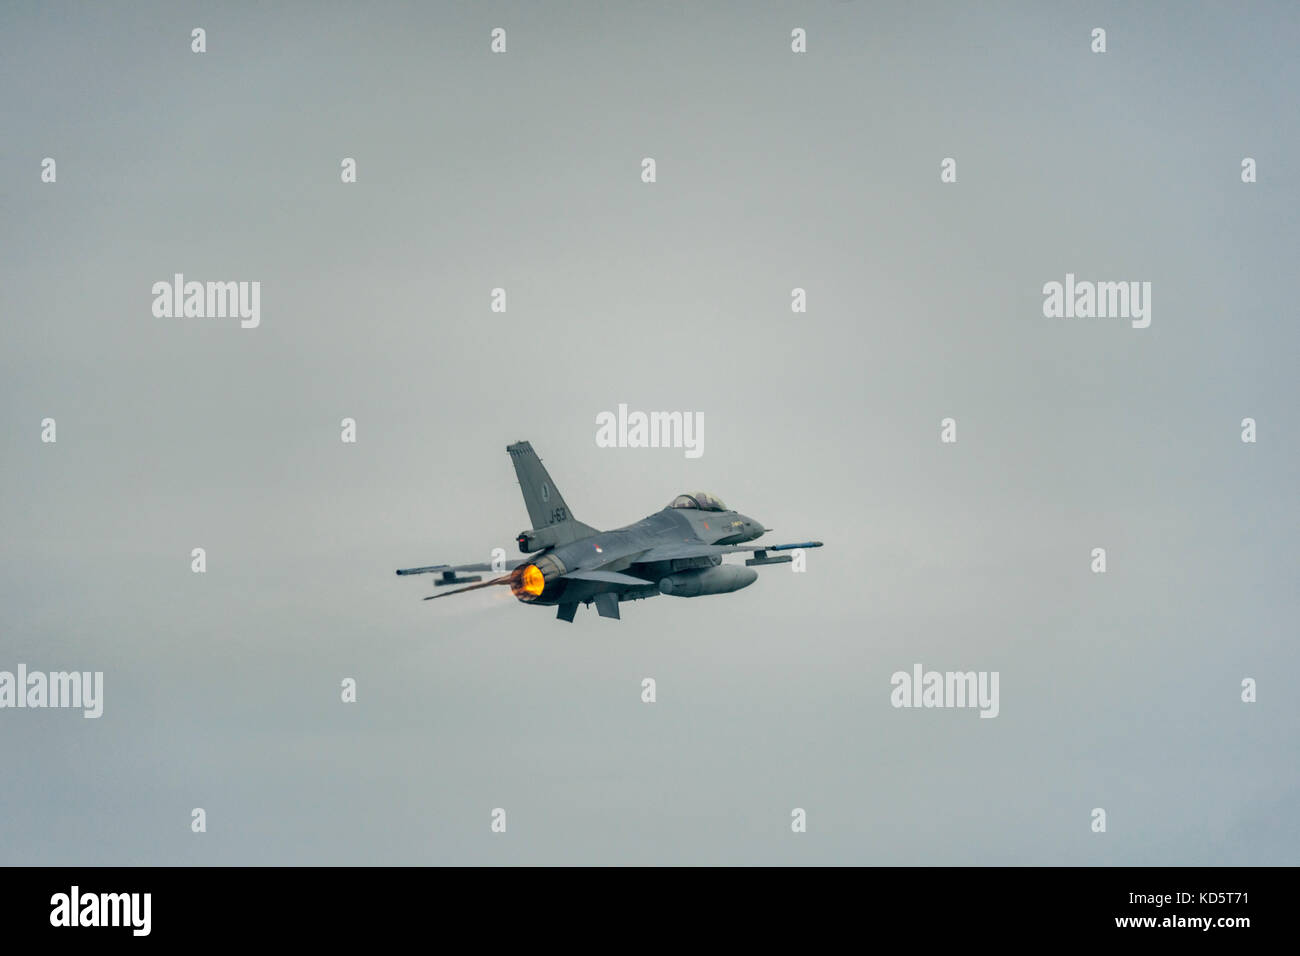 An F-16 fighter takes off from the military airbase in Leeuwarden. Stock Photo